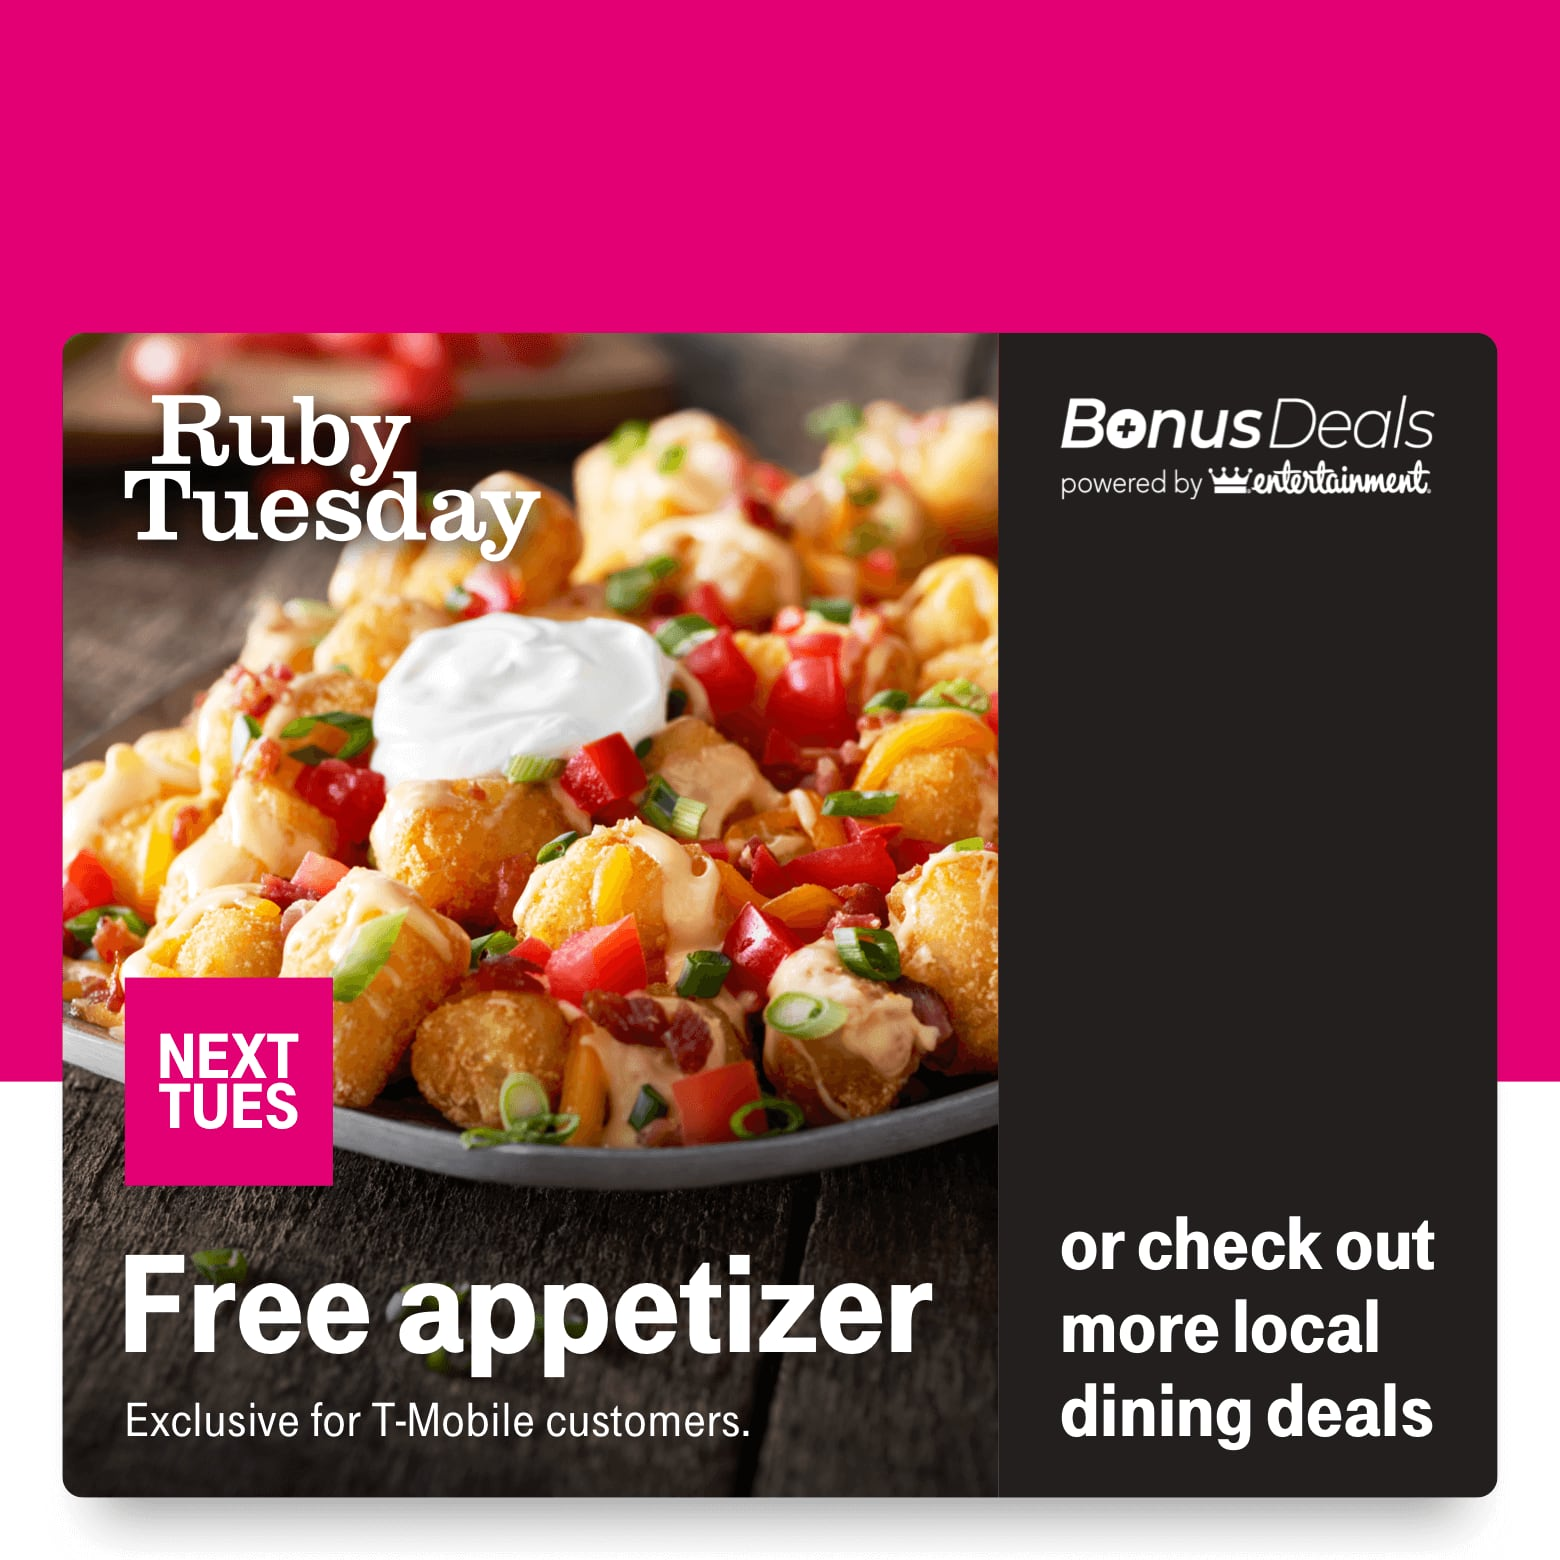 T-Mobile Customers 02/25: Ruby Tuesday Free Appetizer, Walgreens 10 Free 4x6 prints